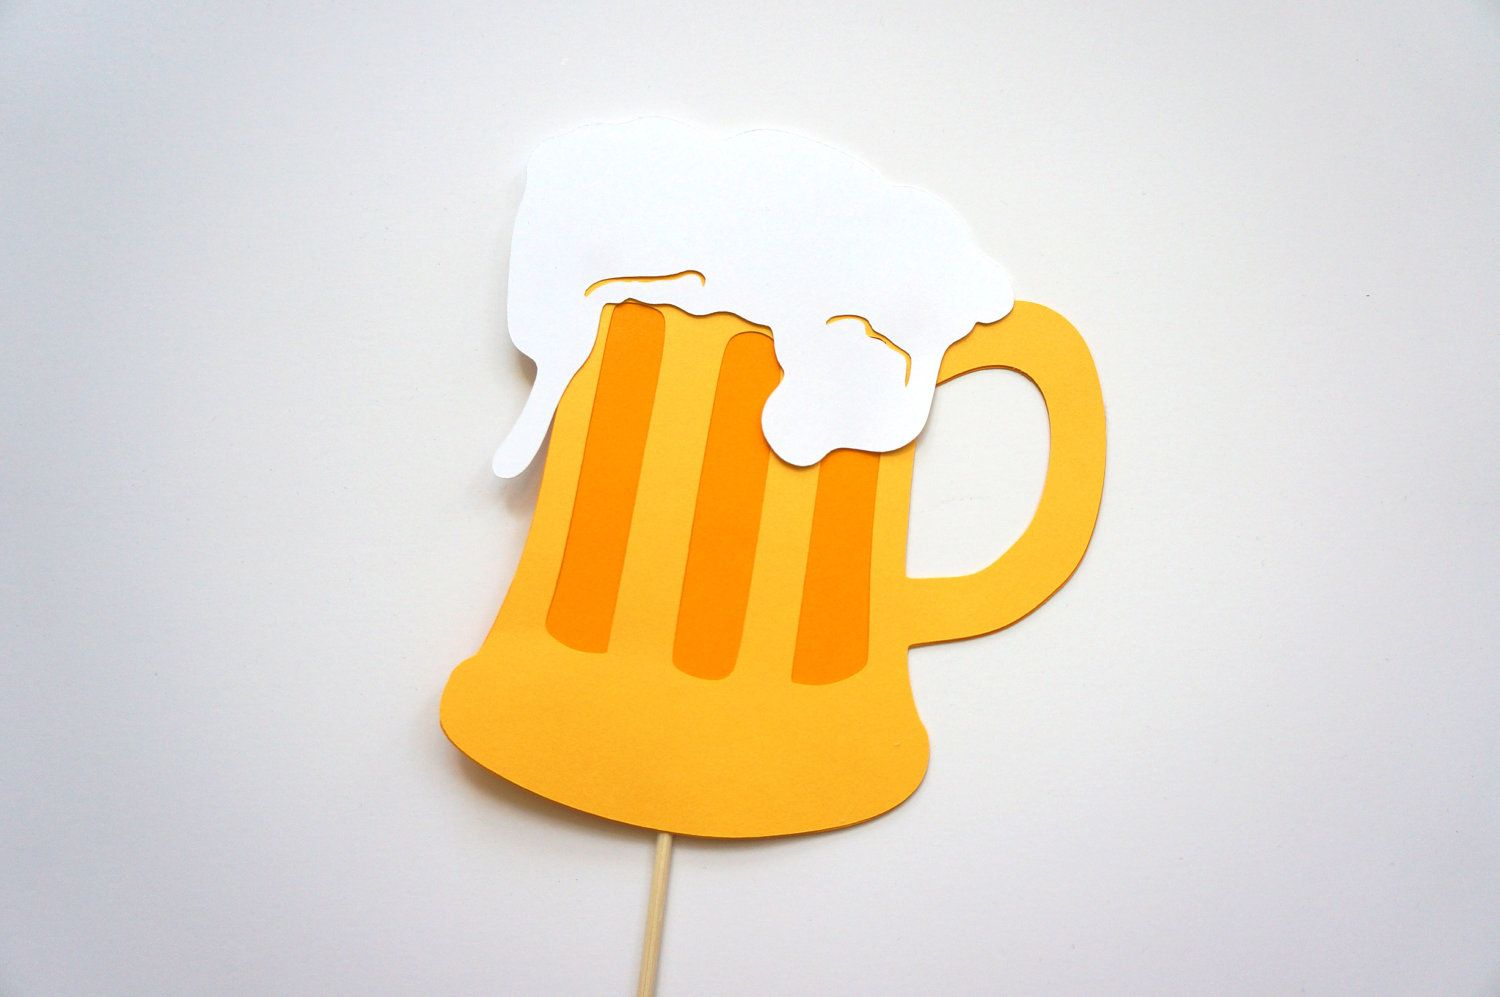 wedding photo booth props printable%0A Photo Booth Props  Beer Mug on a stick Photo booth Prop  Fun Photobooth  Props